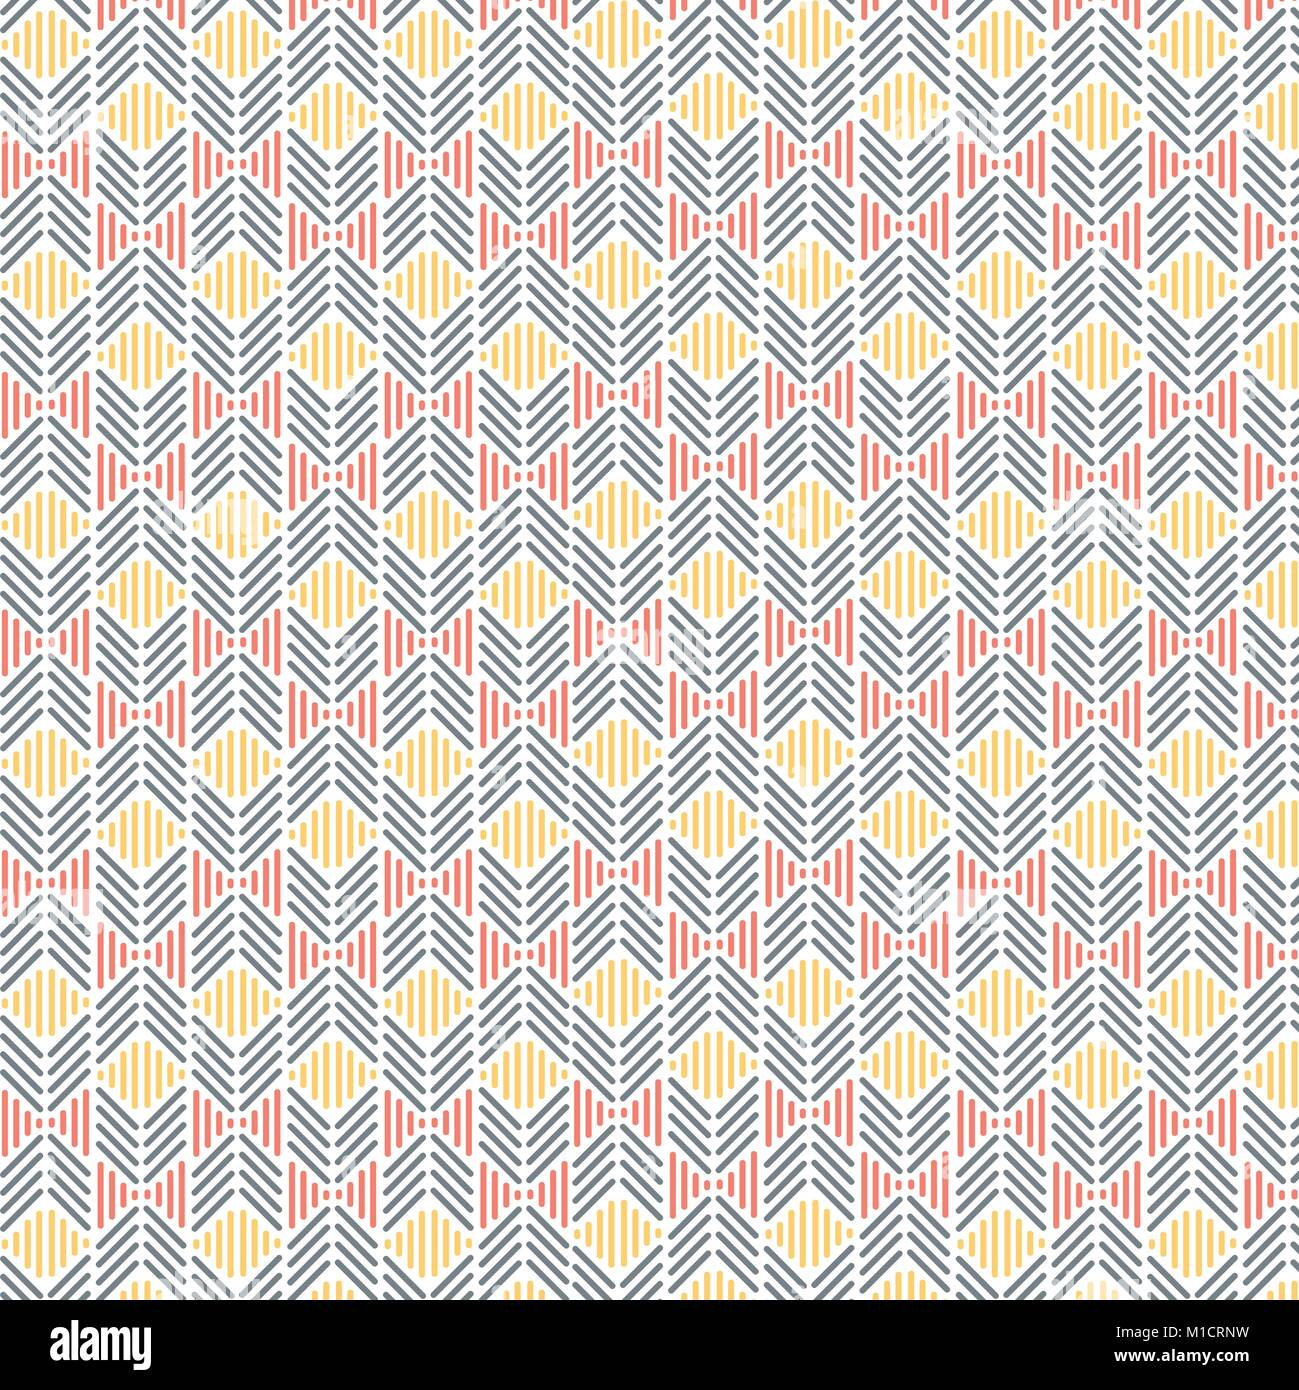 Abstract lines geometric texture vector seamless pattern - Stock Image